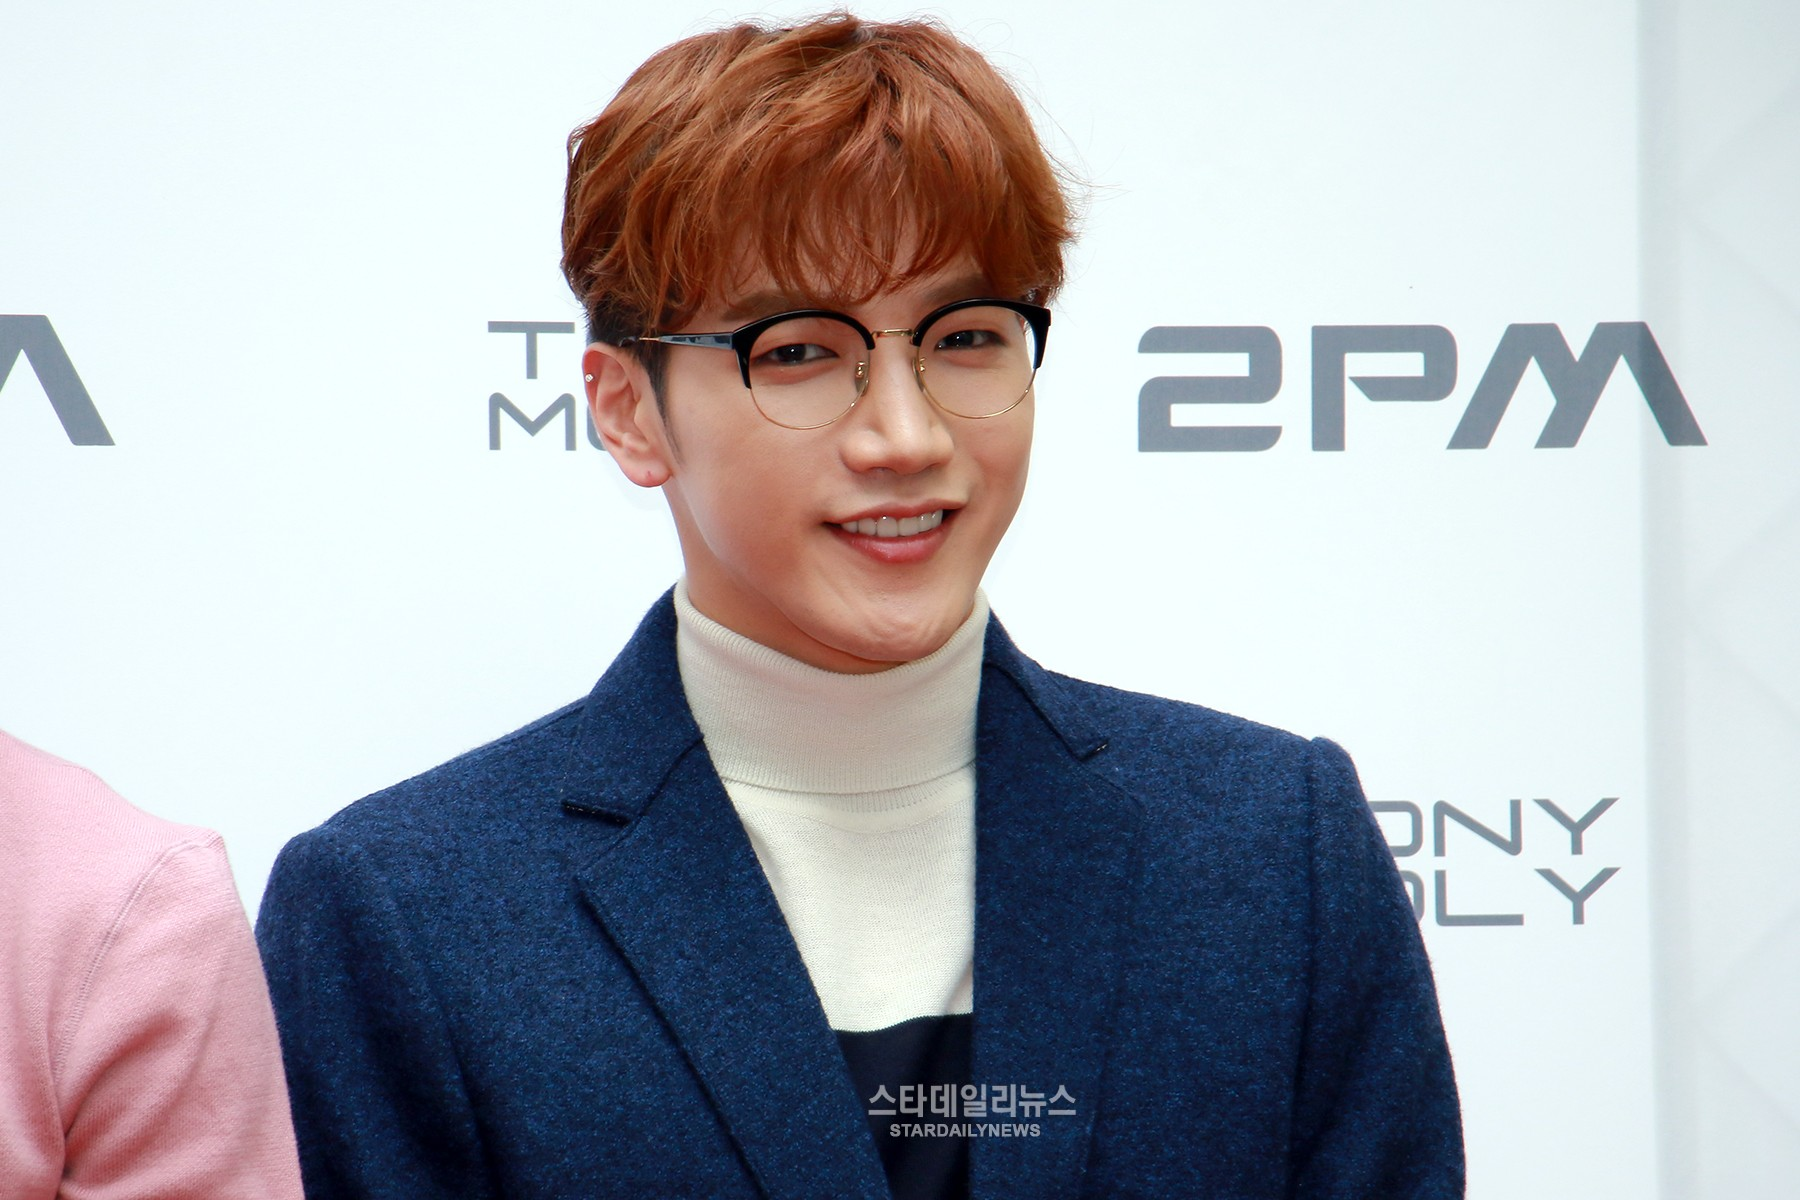 2PM's Jun.K Puts His Foot Down In Response To Obsessive Fan Behavior